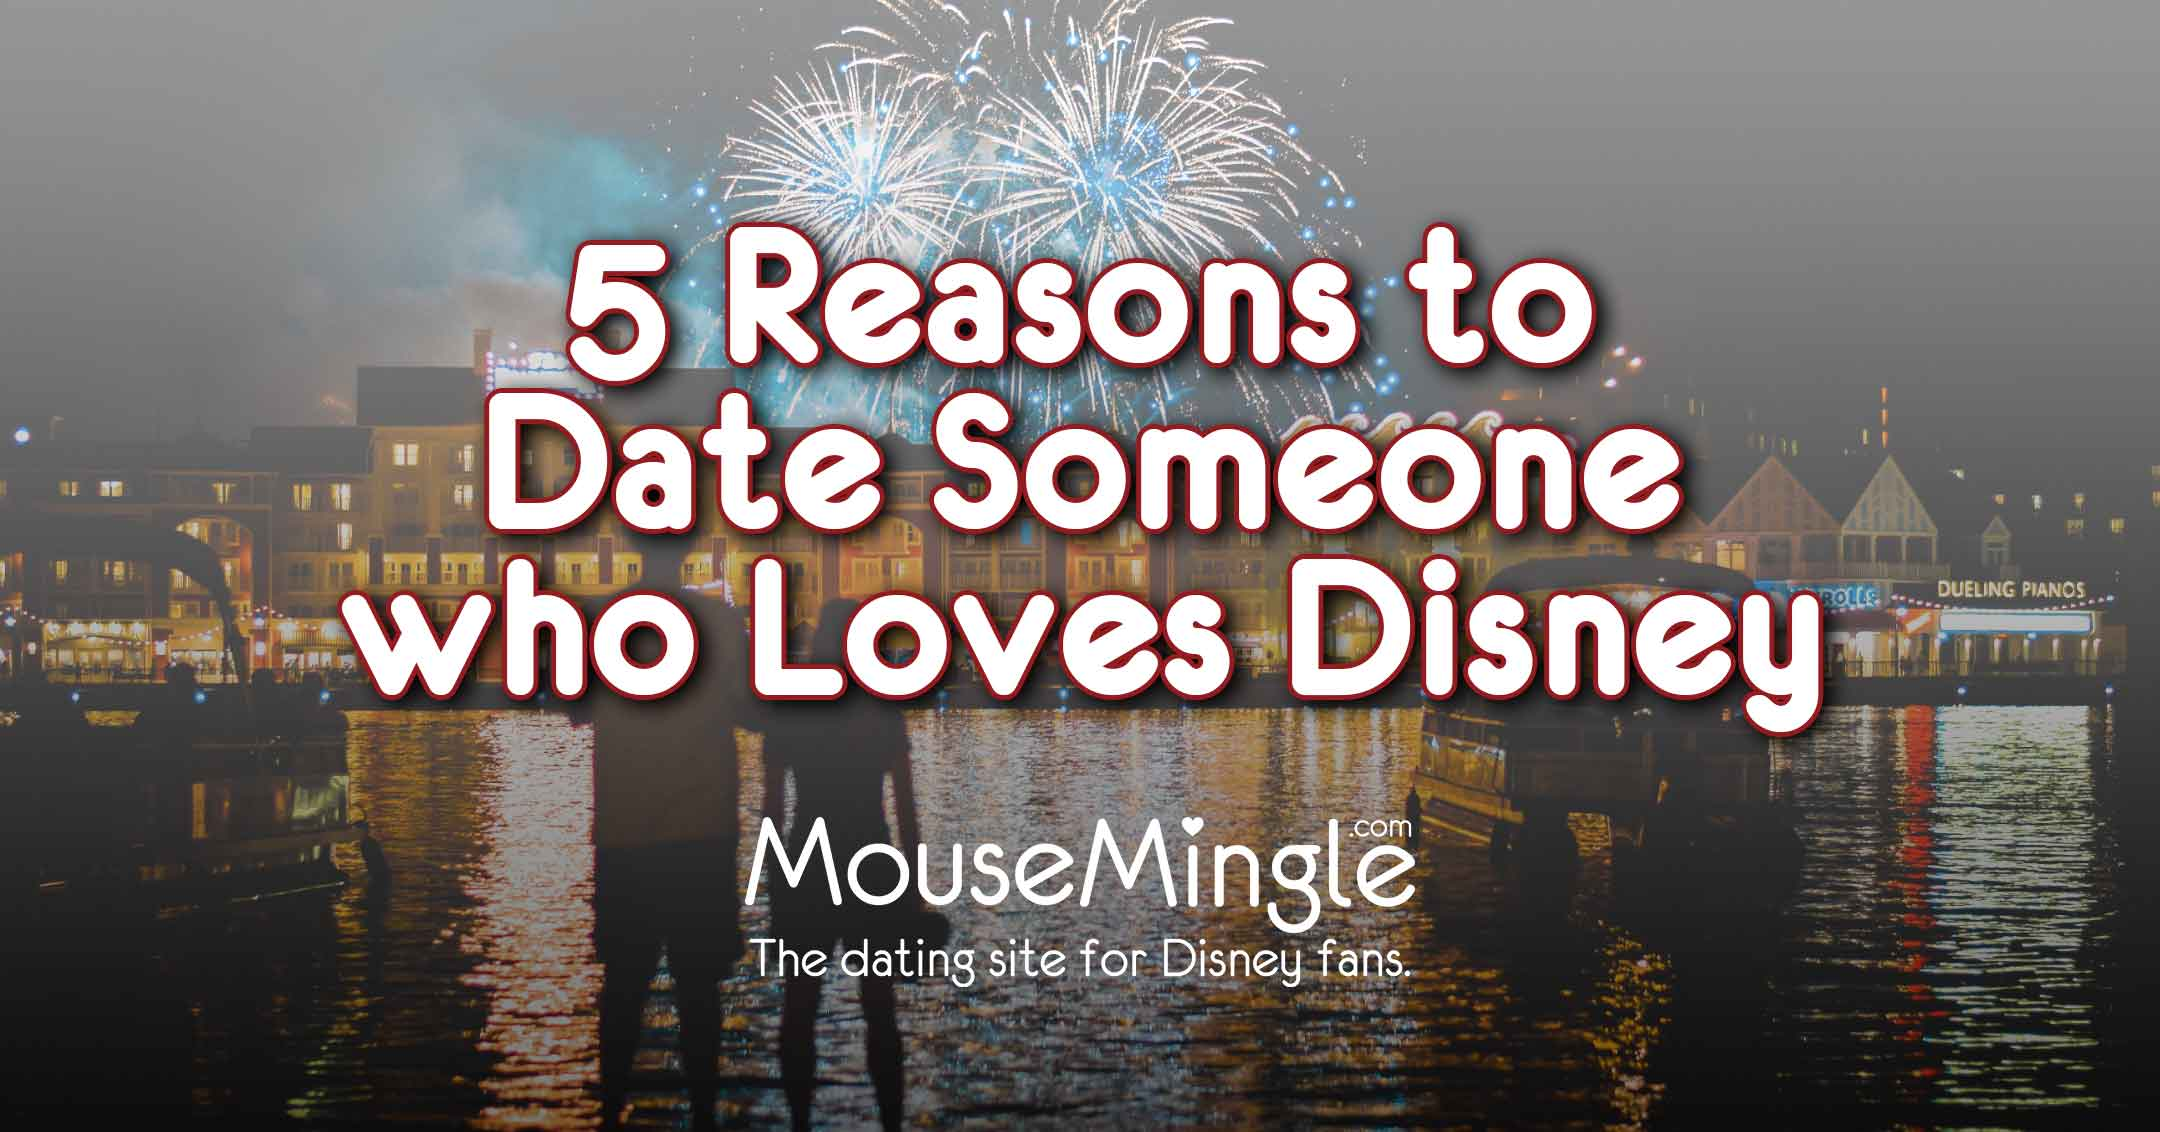 5 Reasons to Date Someone who Loves Disney